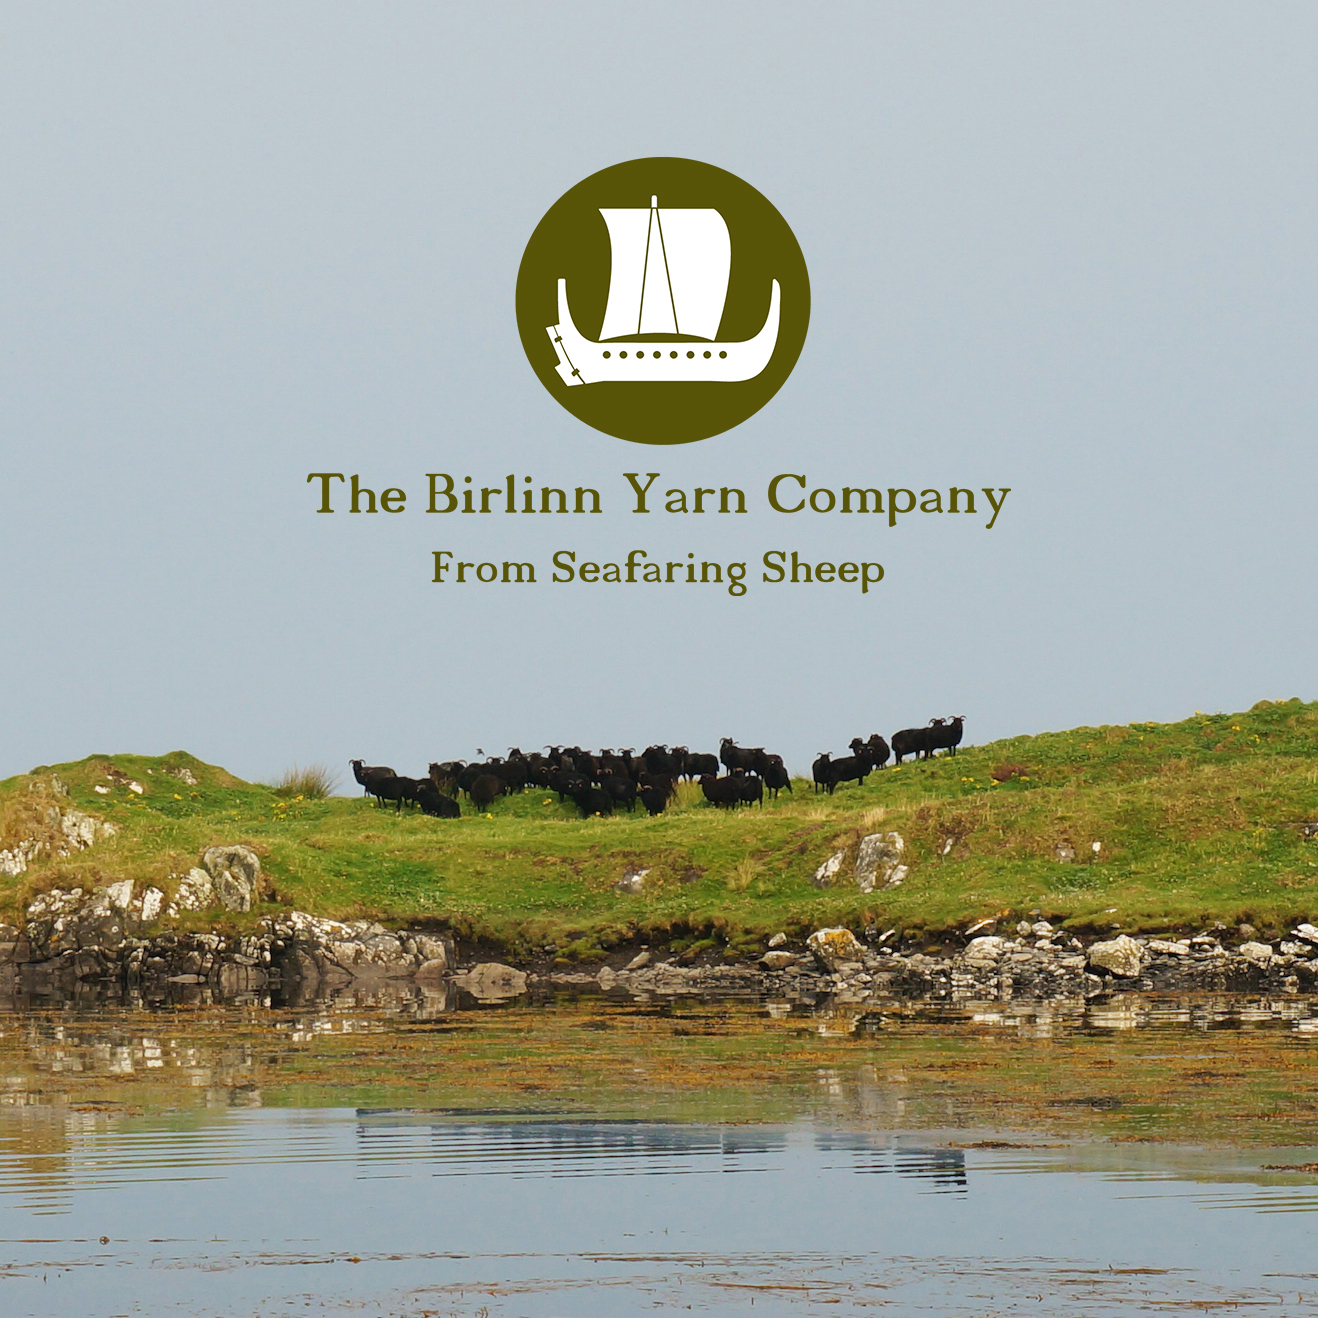 The Birlinn Yarn Company   Yarn and sheepskins from seafaring Hebridean sheep bred in the Outer Hebrides, Scotland. Yarns in natural shades and delicate Hebridean colours. All our products, like our Hebridean sheep, are rare and small in number. Sustainably produced, they glean their aesthetic qualities from the Hebridean landscape and culture.